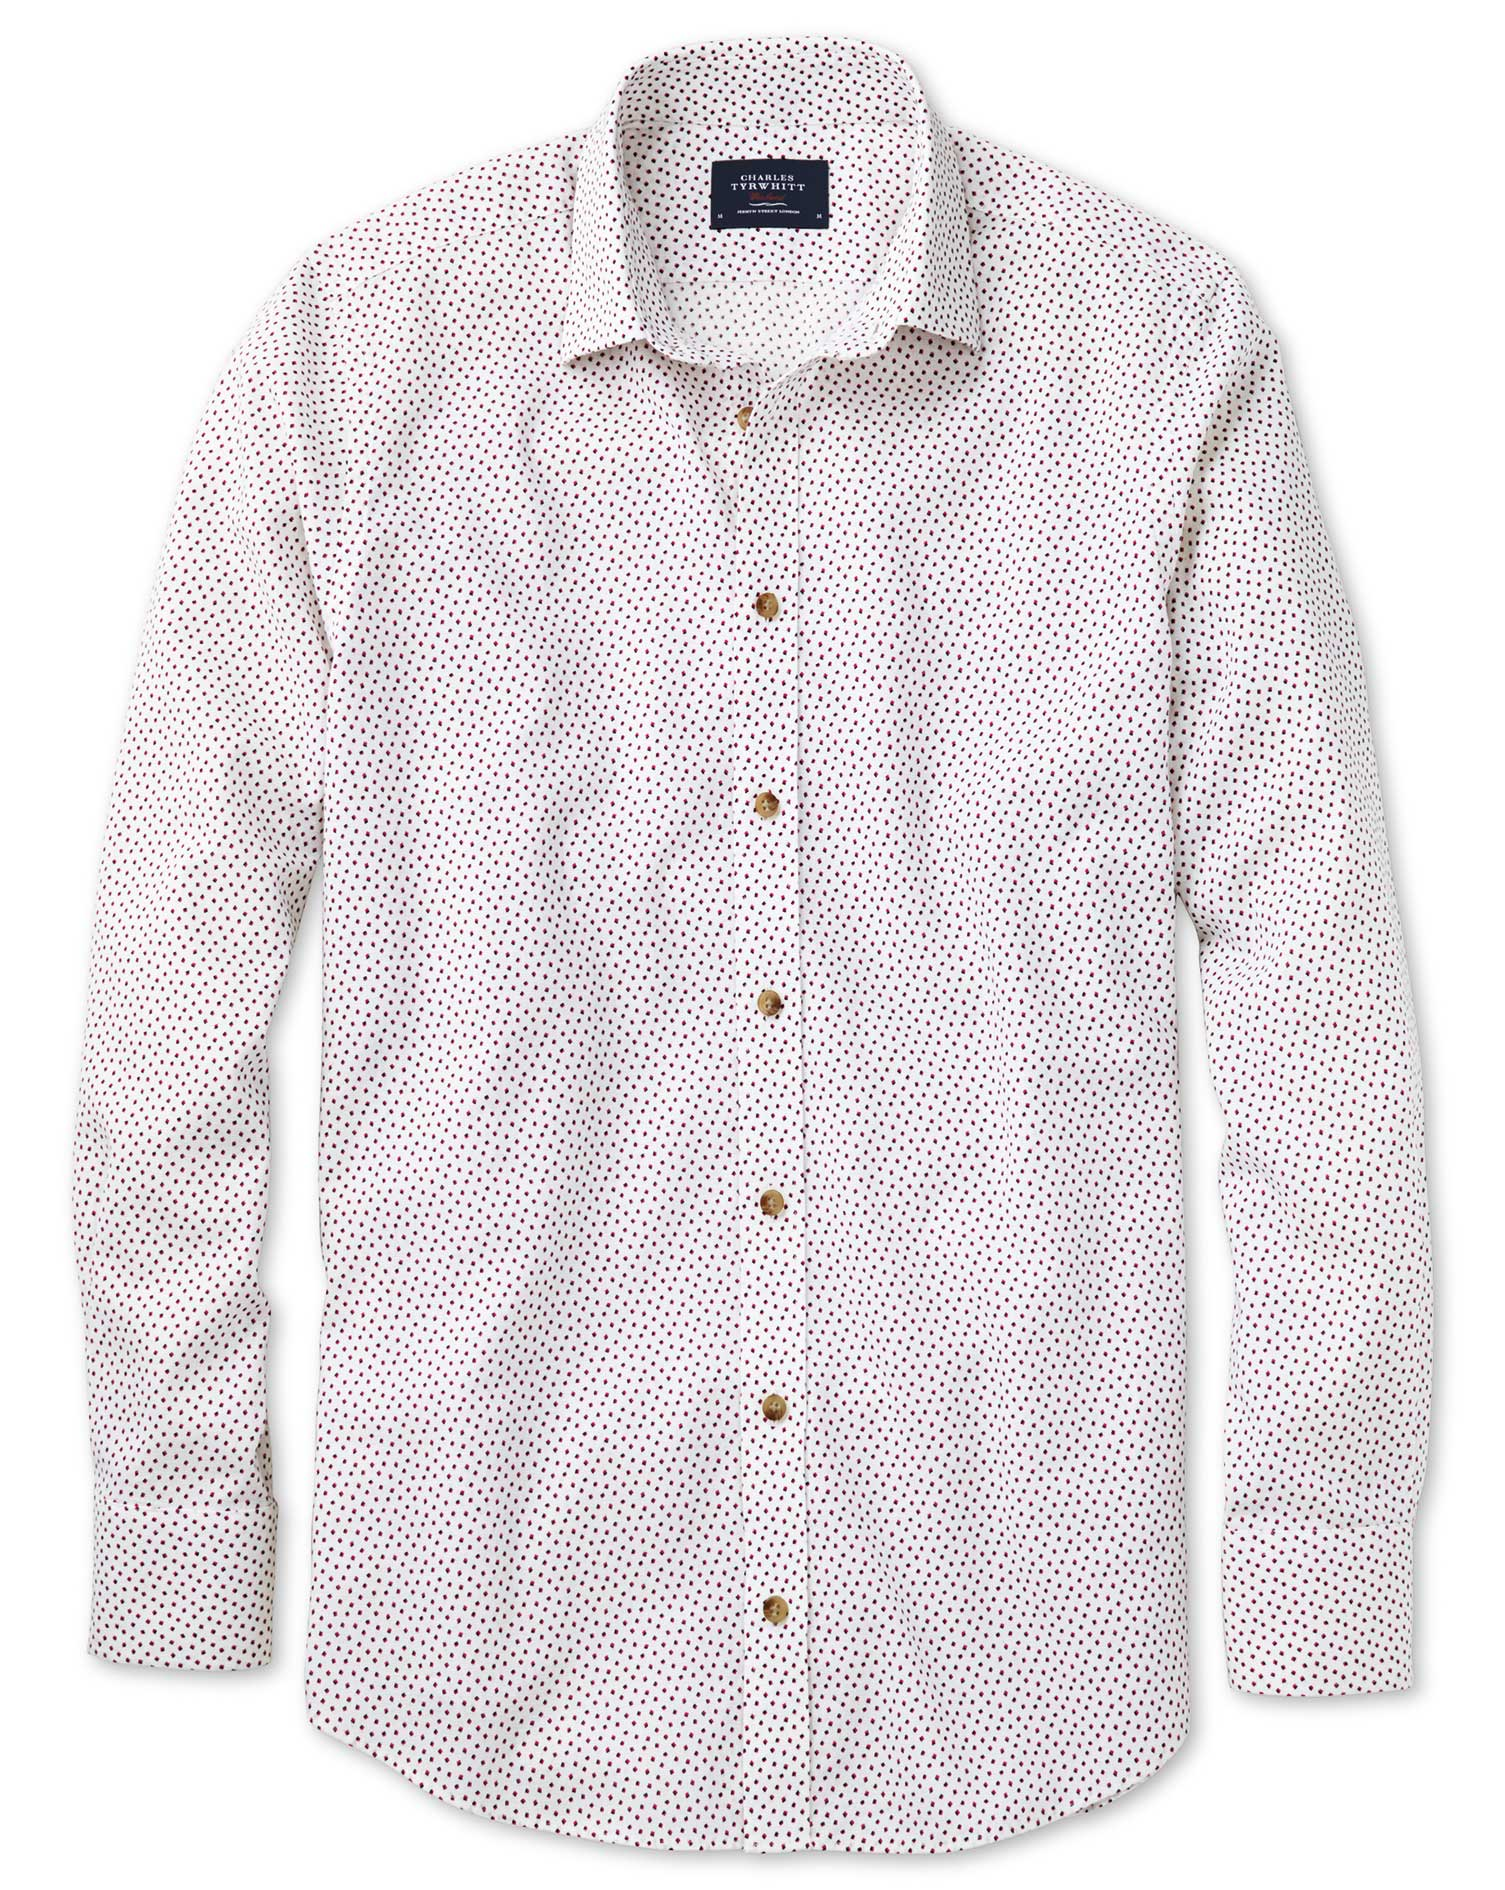 Extra Slim Fit White and Pink Square Print Shirt Single Cuff Size Medium by Charles Tyrwhitt